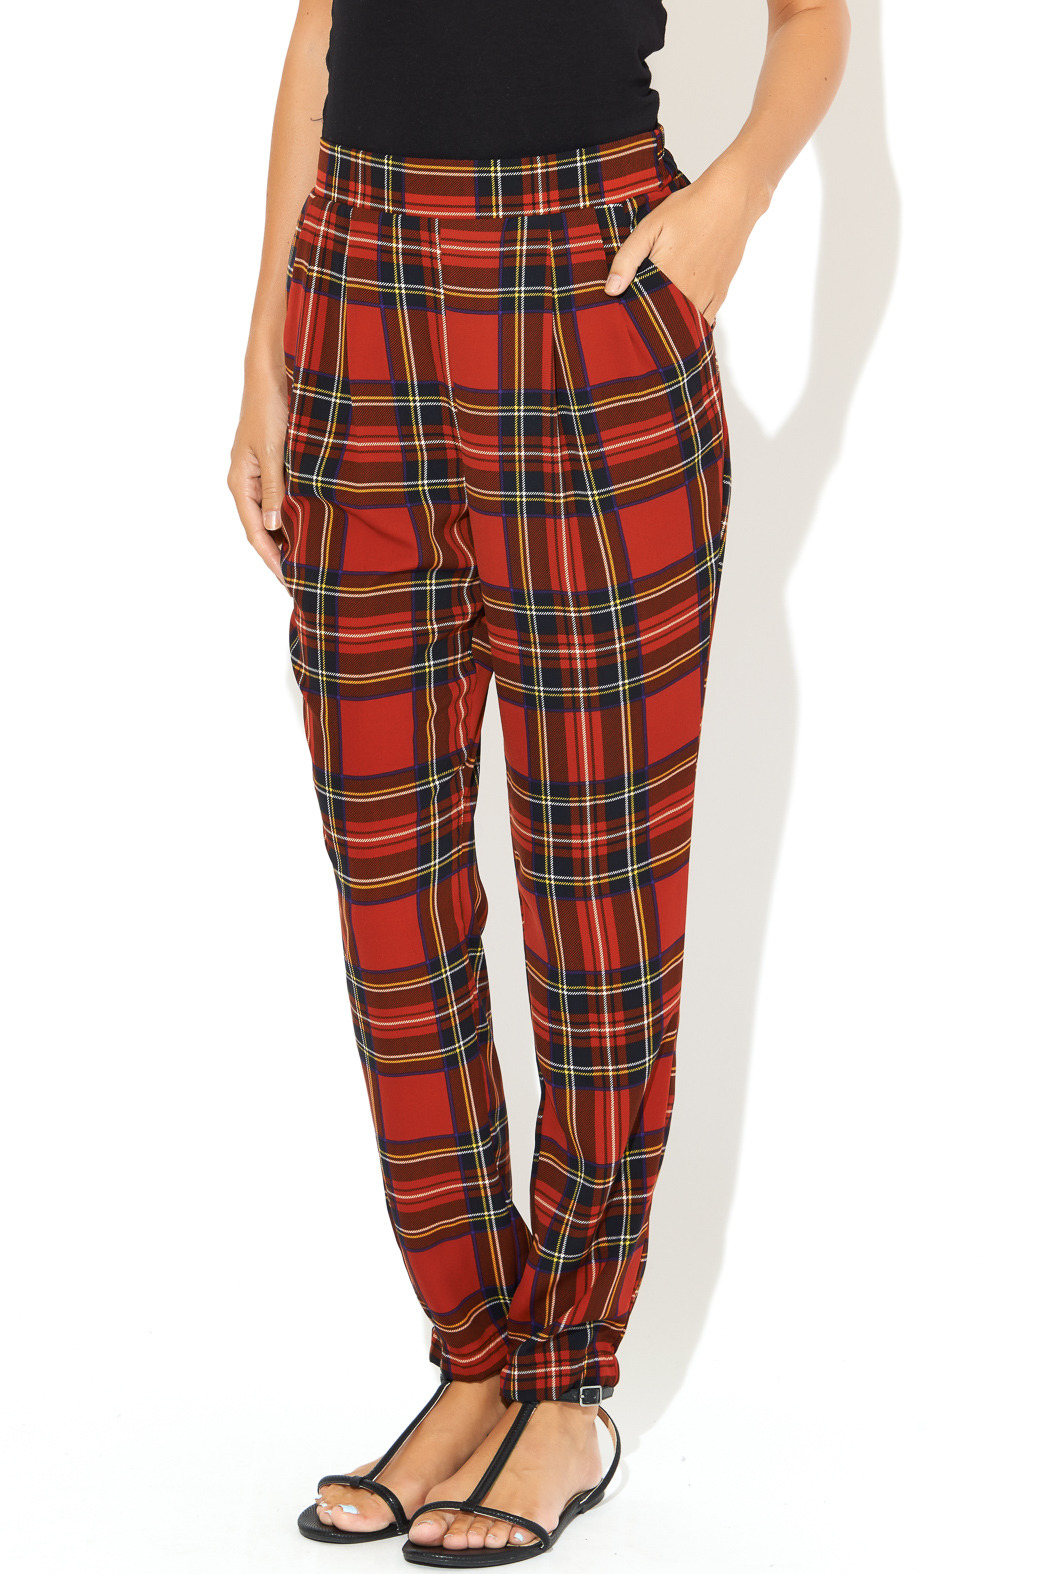 See You Monday Red Tartan Print Pants - Front Cropped Image